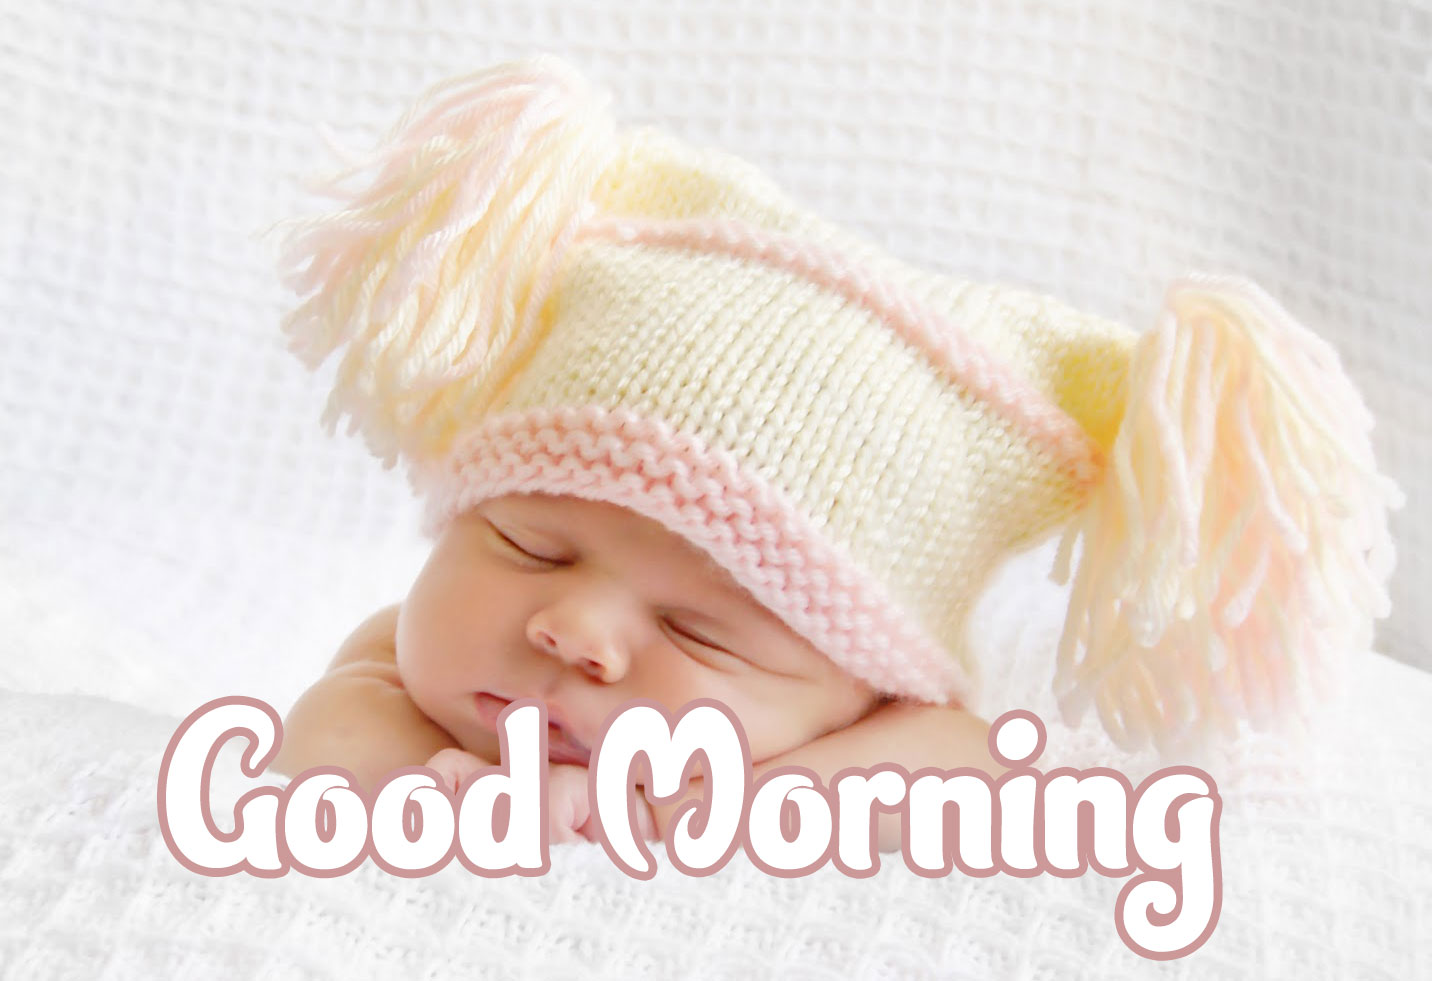 696+ Best Cute Good Morning Images Photo Download